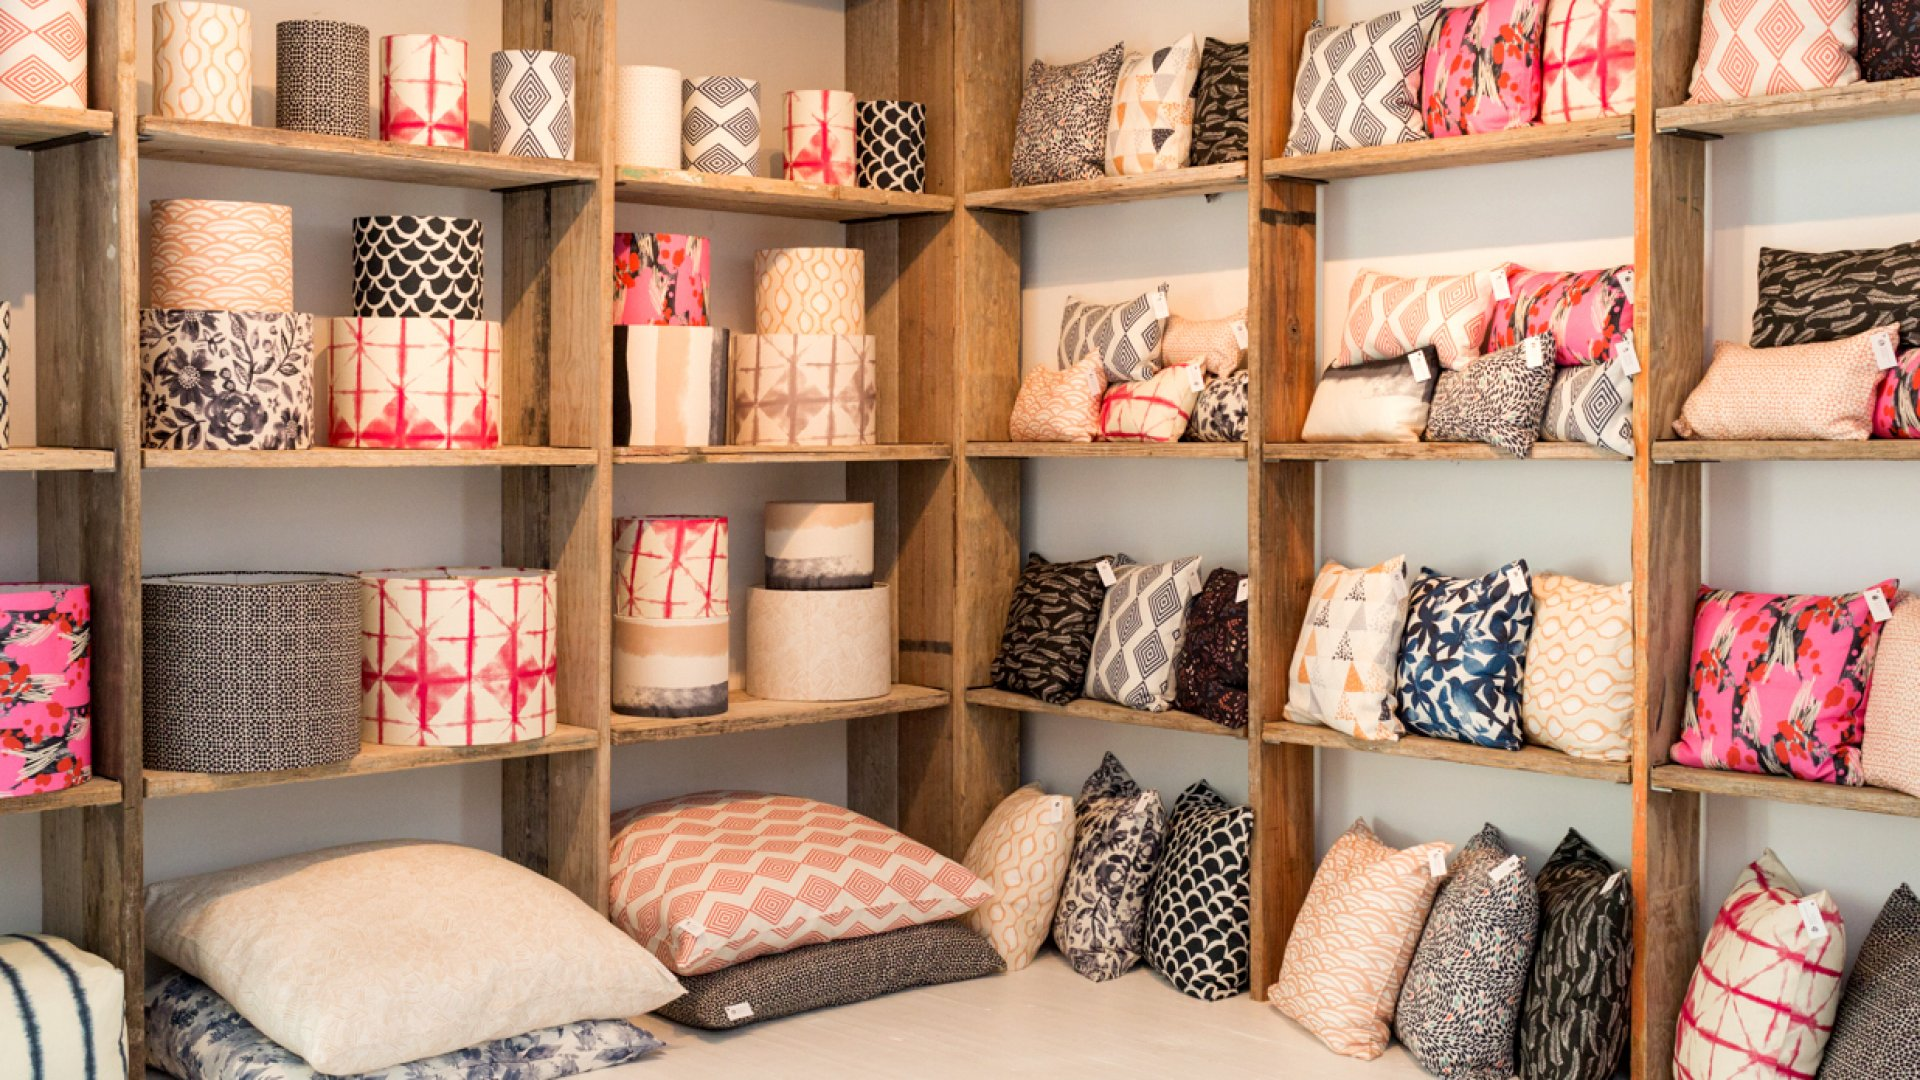 Minted Cracks Into the $100 Billion Home Goods Market